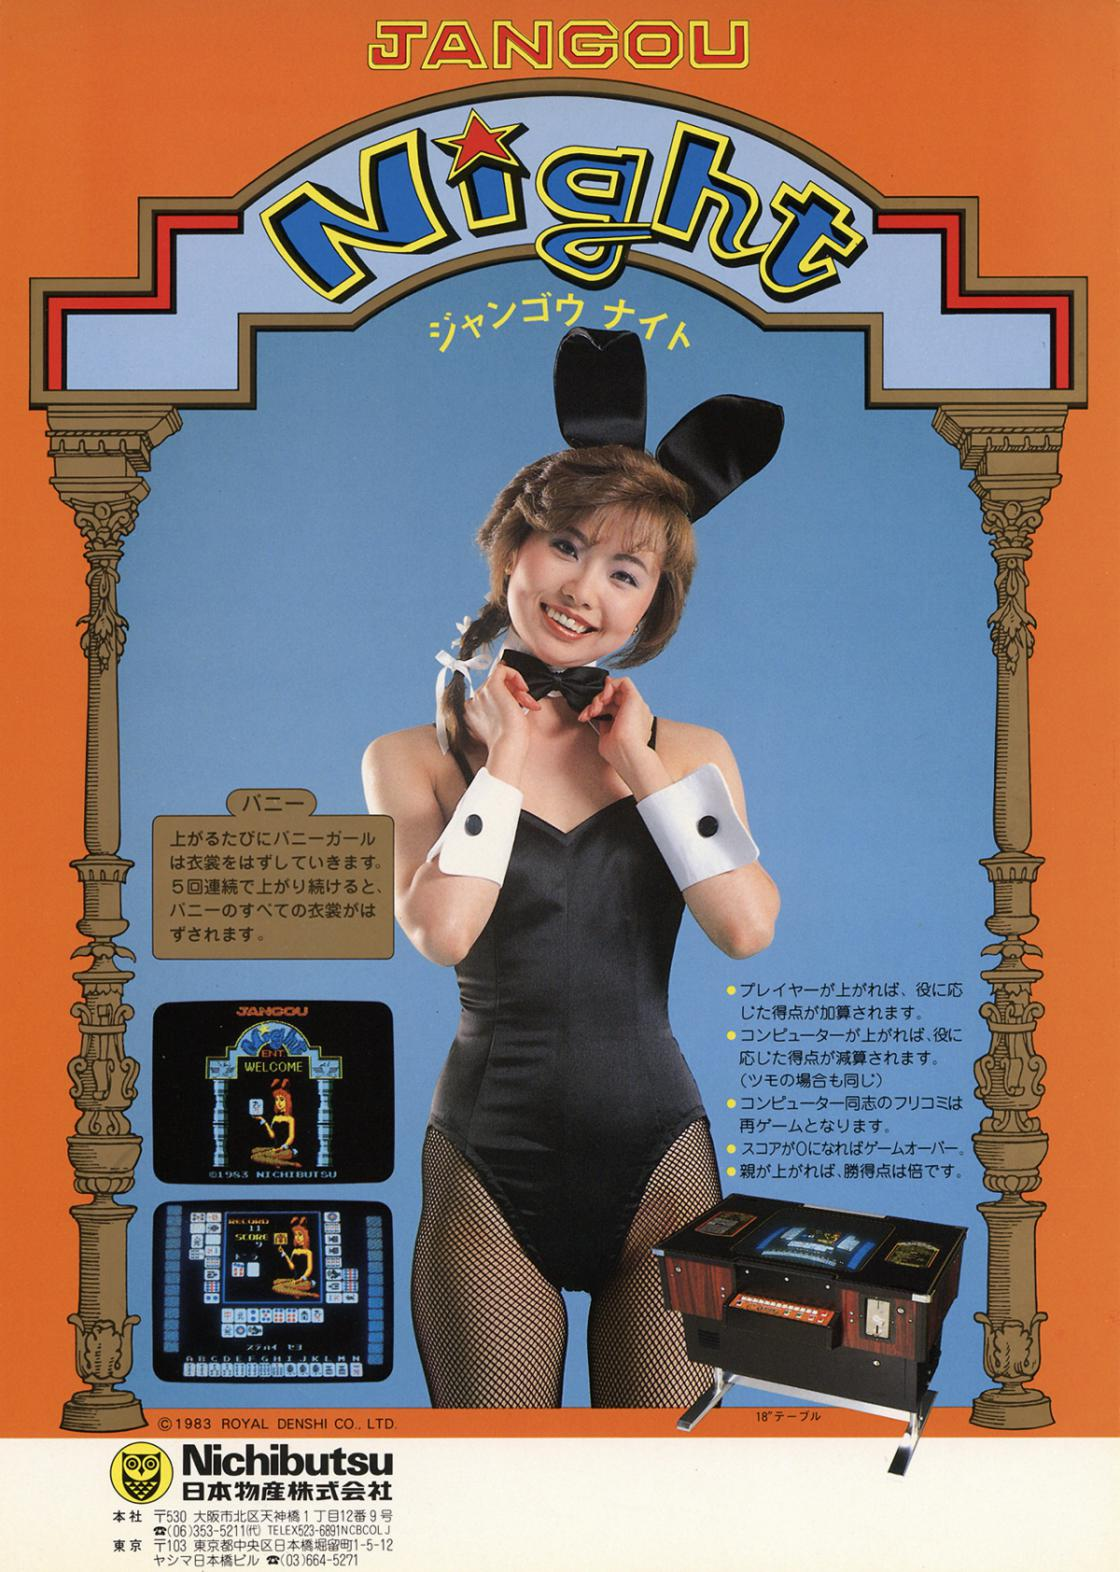 publicites-japonaises-jeux-video-1980-7.jpg